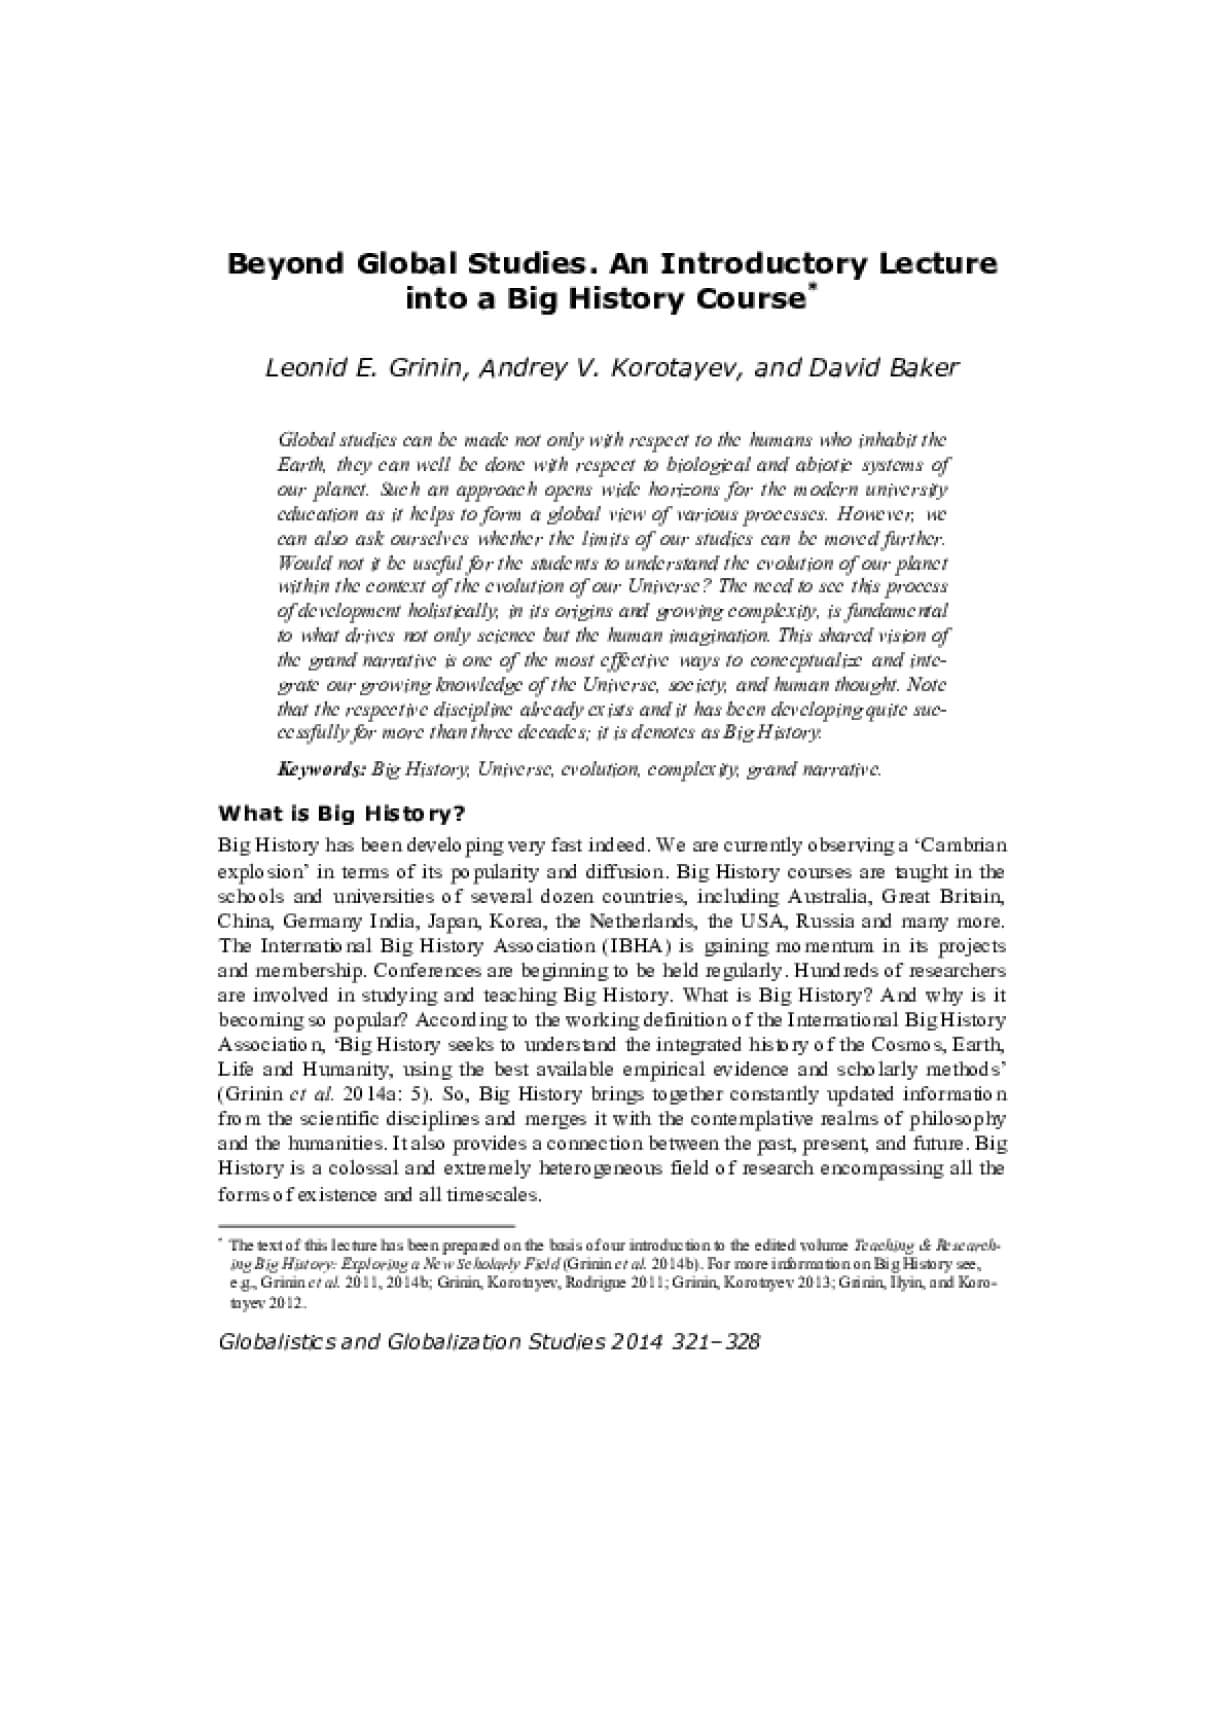 Beyond Global Studies. An Introductory Lecture into a Big History Course